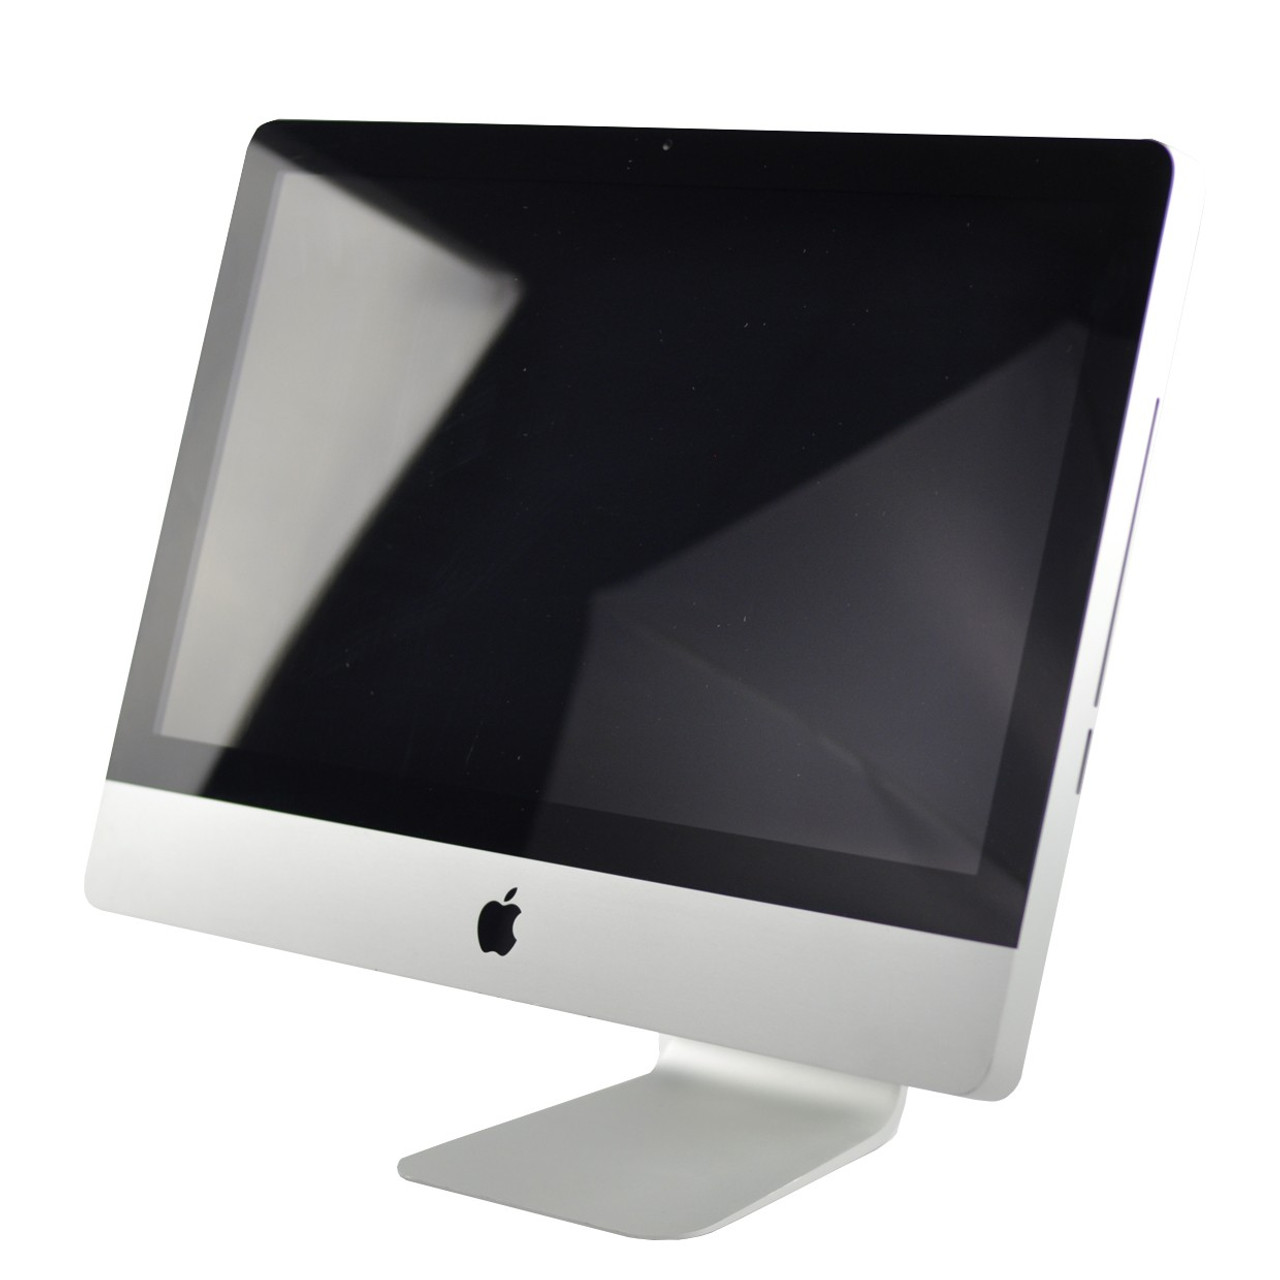 Apple iMac 2010 OS X Yosemite A1311 MC508LL/A